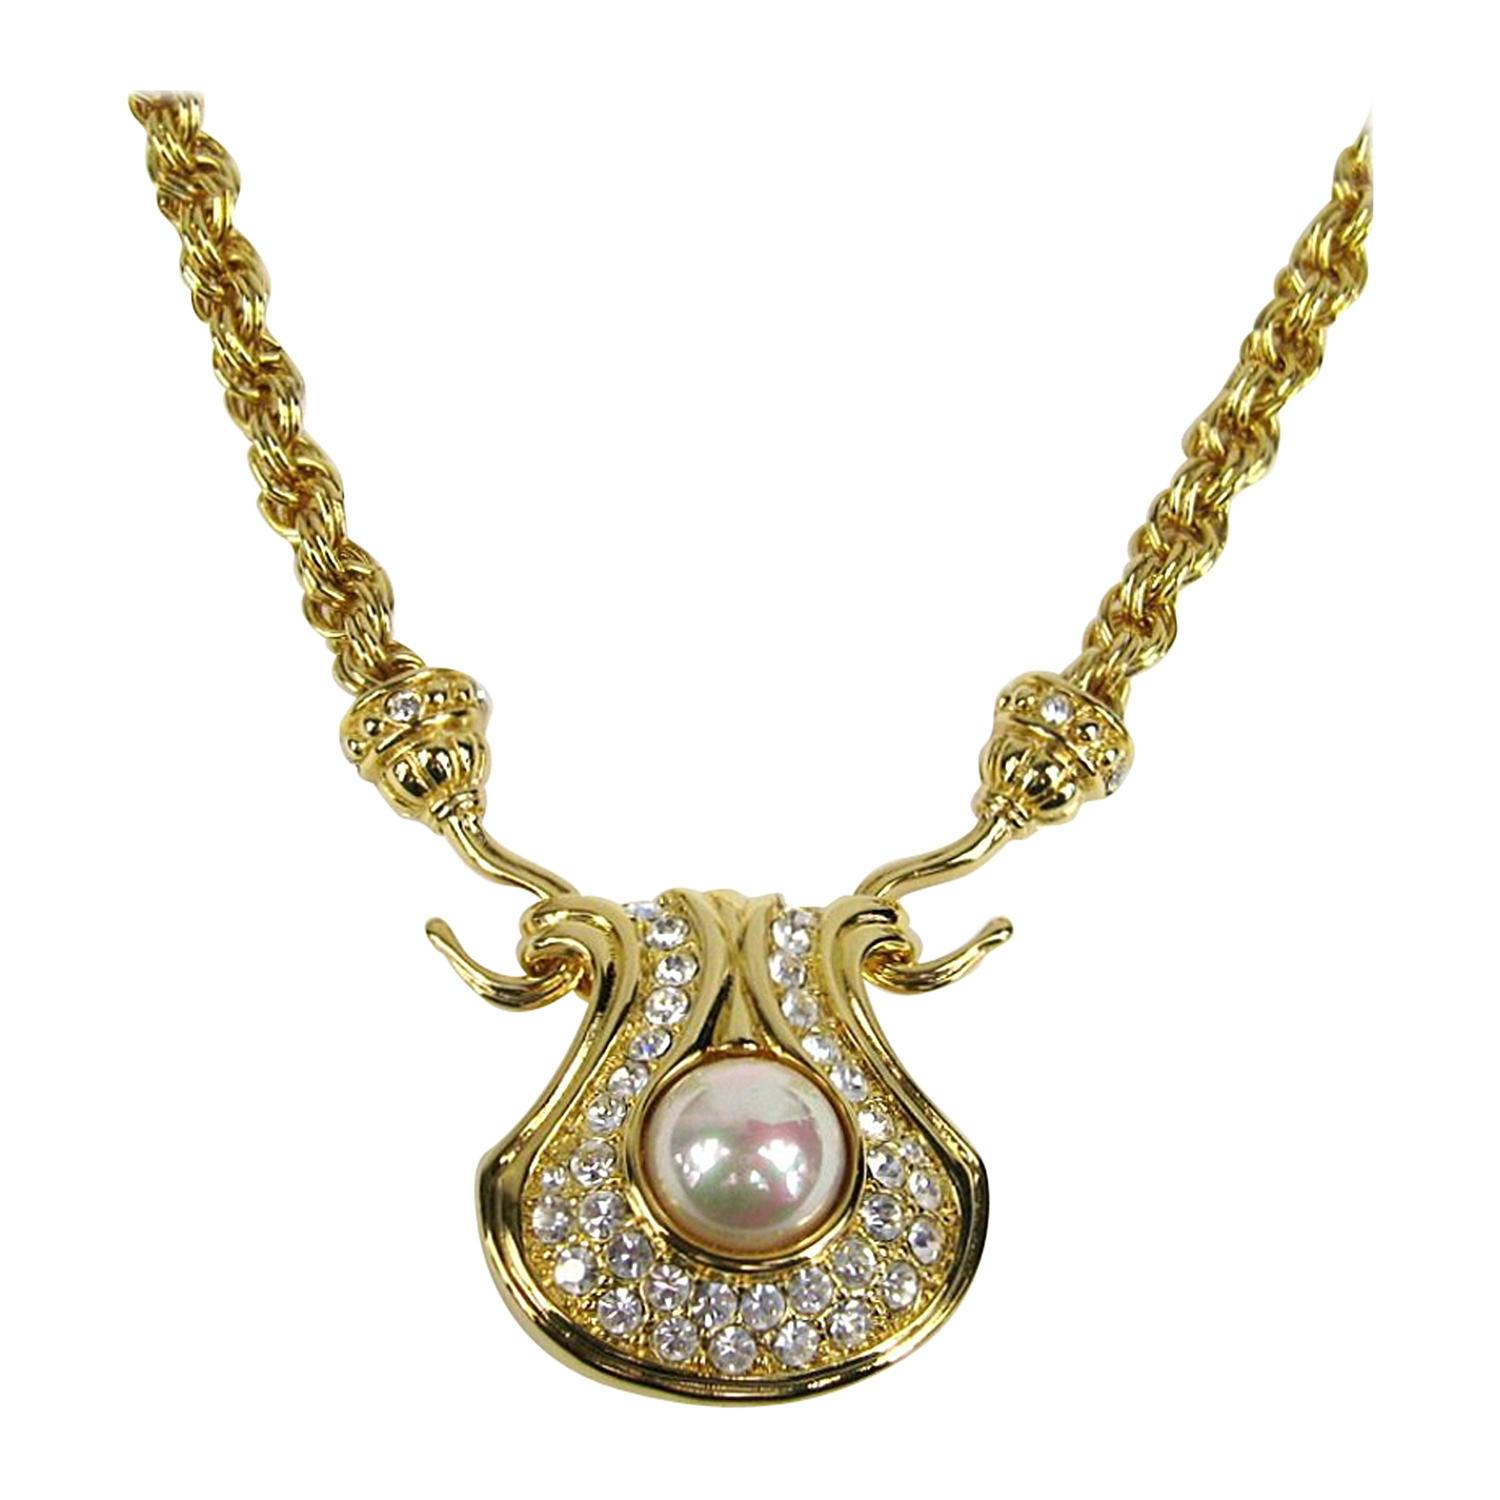 nolan miller pave rhinestone pearl necklace 1990s new